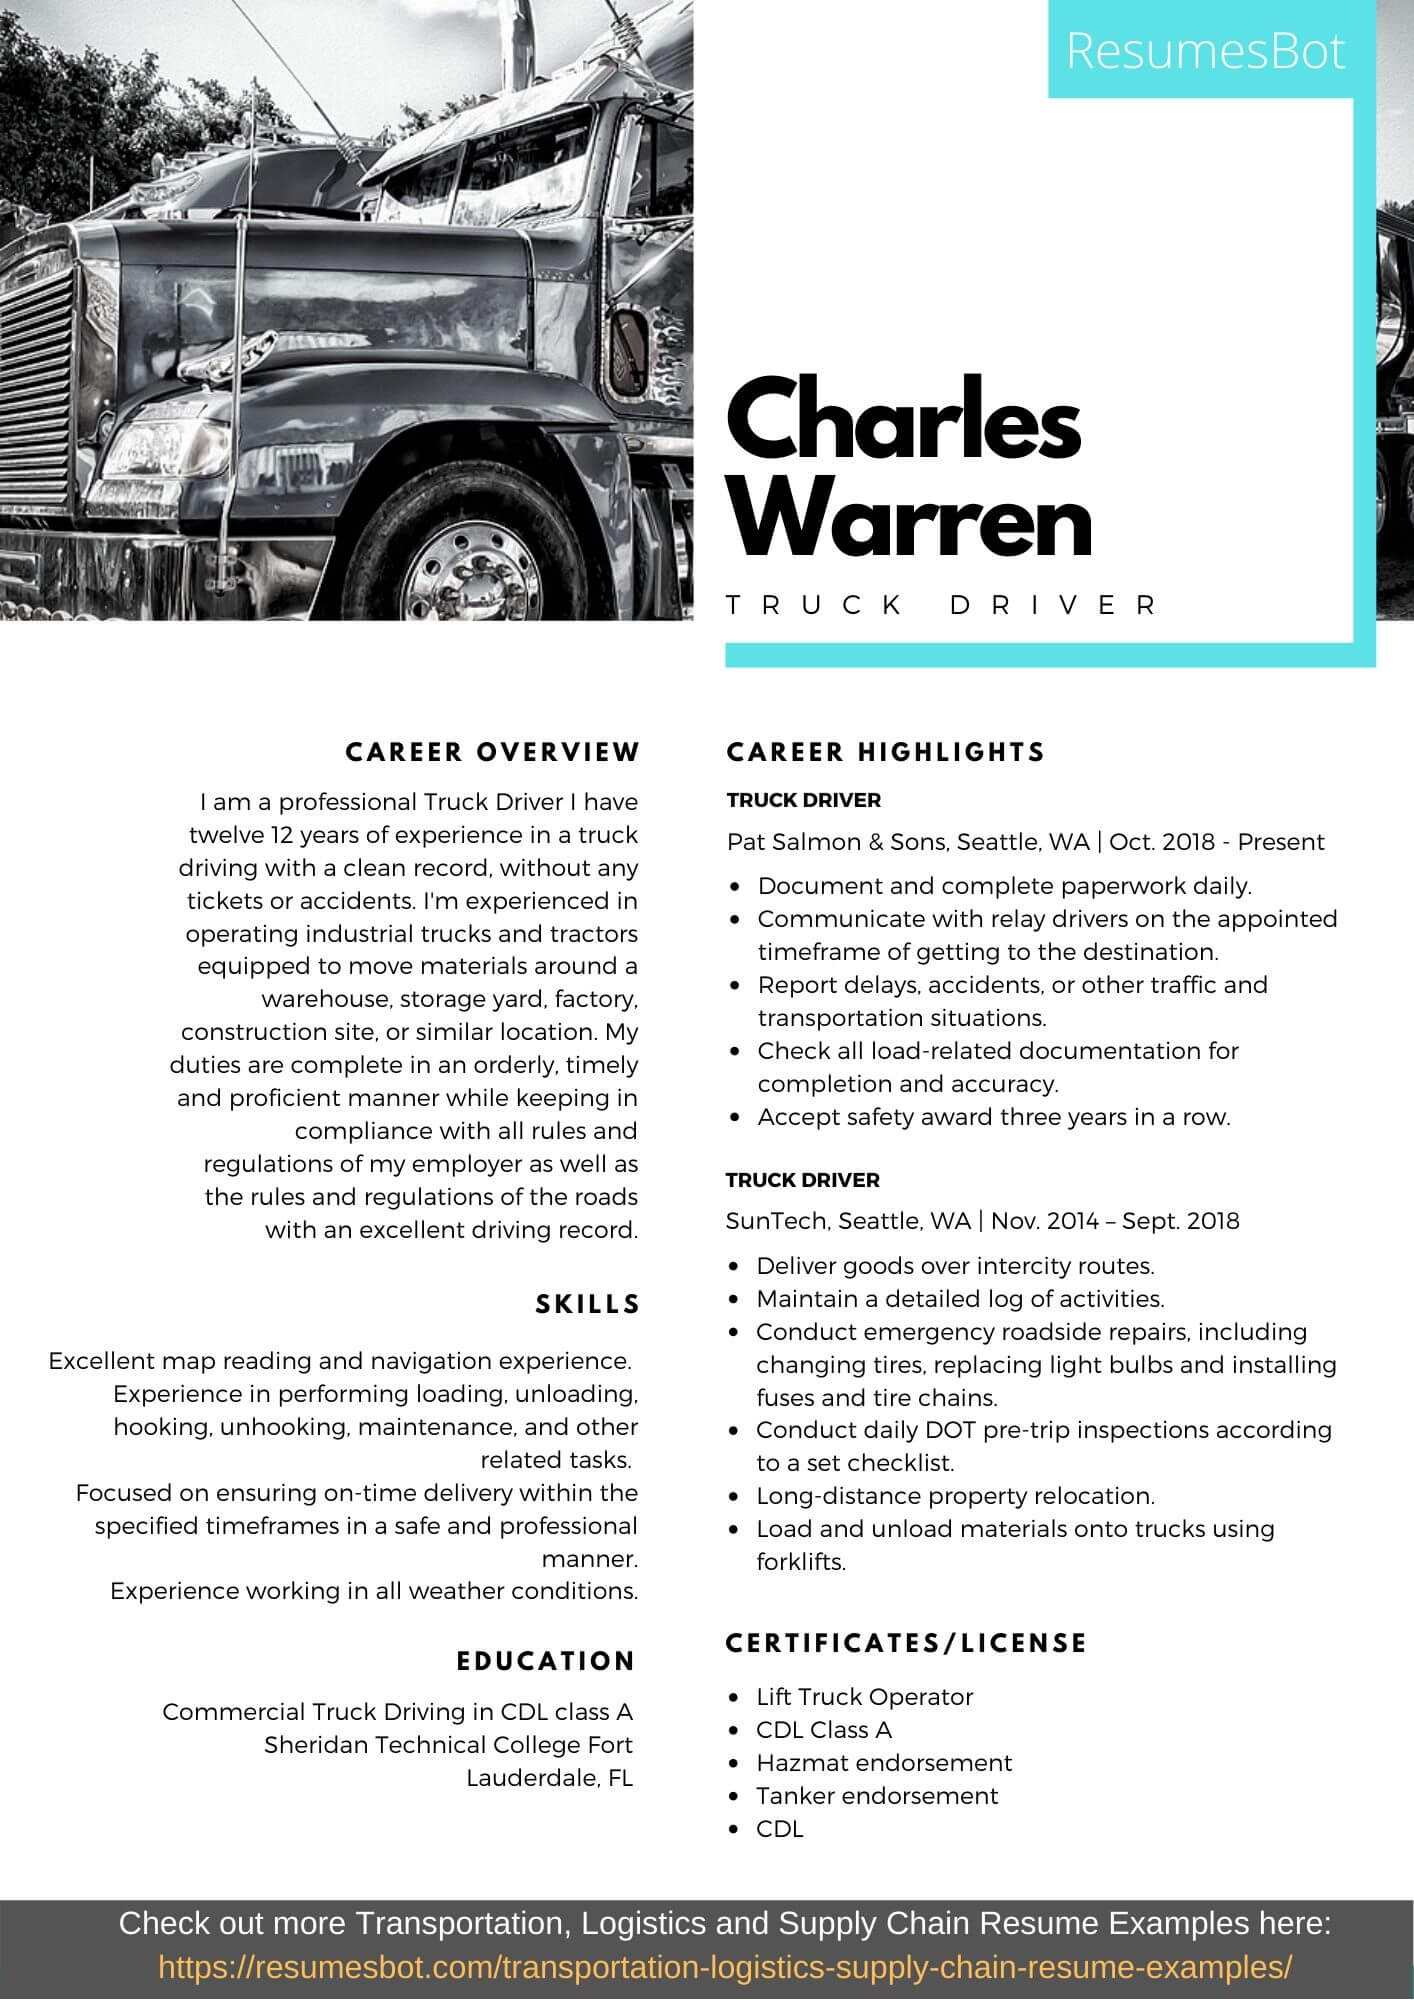 truck driver resume samples and tips pdf resumes bot examples example mdc optimal Resume Truck Driver Resume Examples